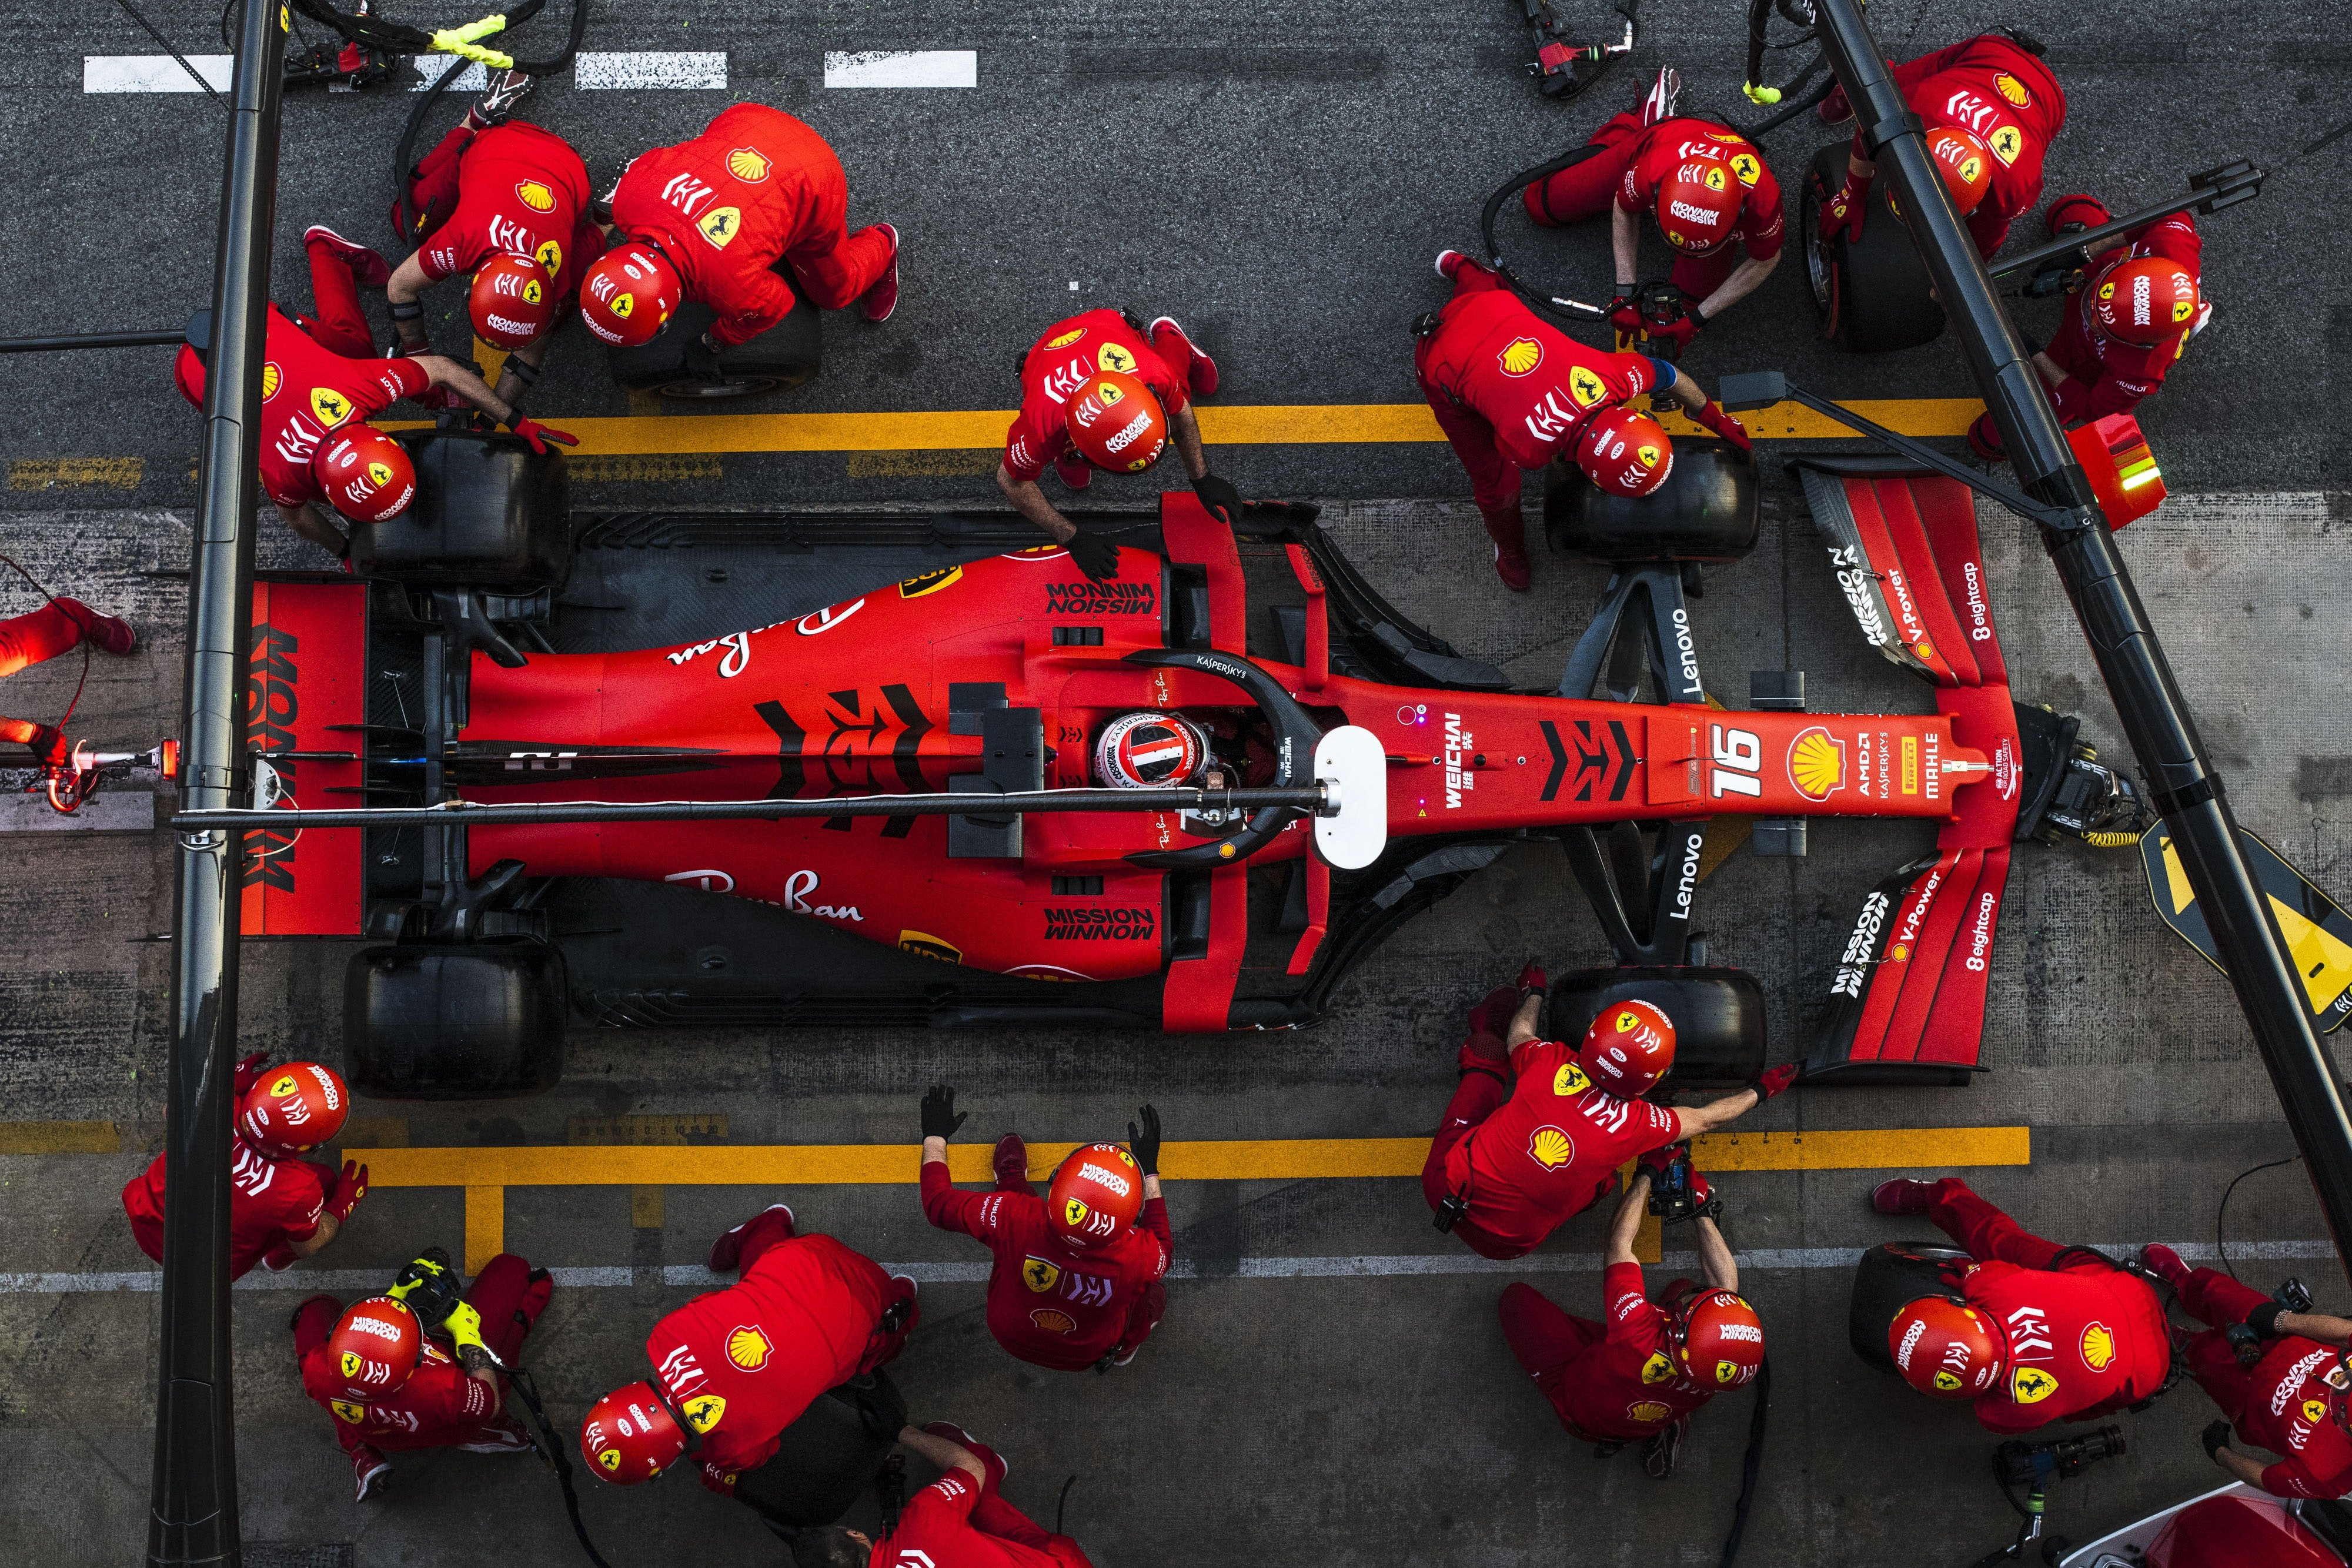 Growth in the Karting Industry is on the Rise Thanks to the Increased Popularity of Formula 1